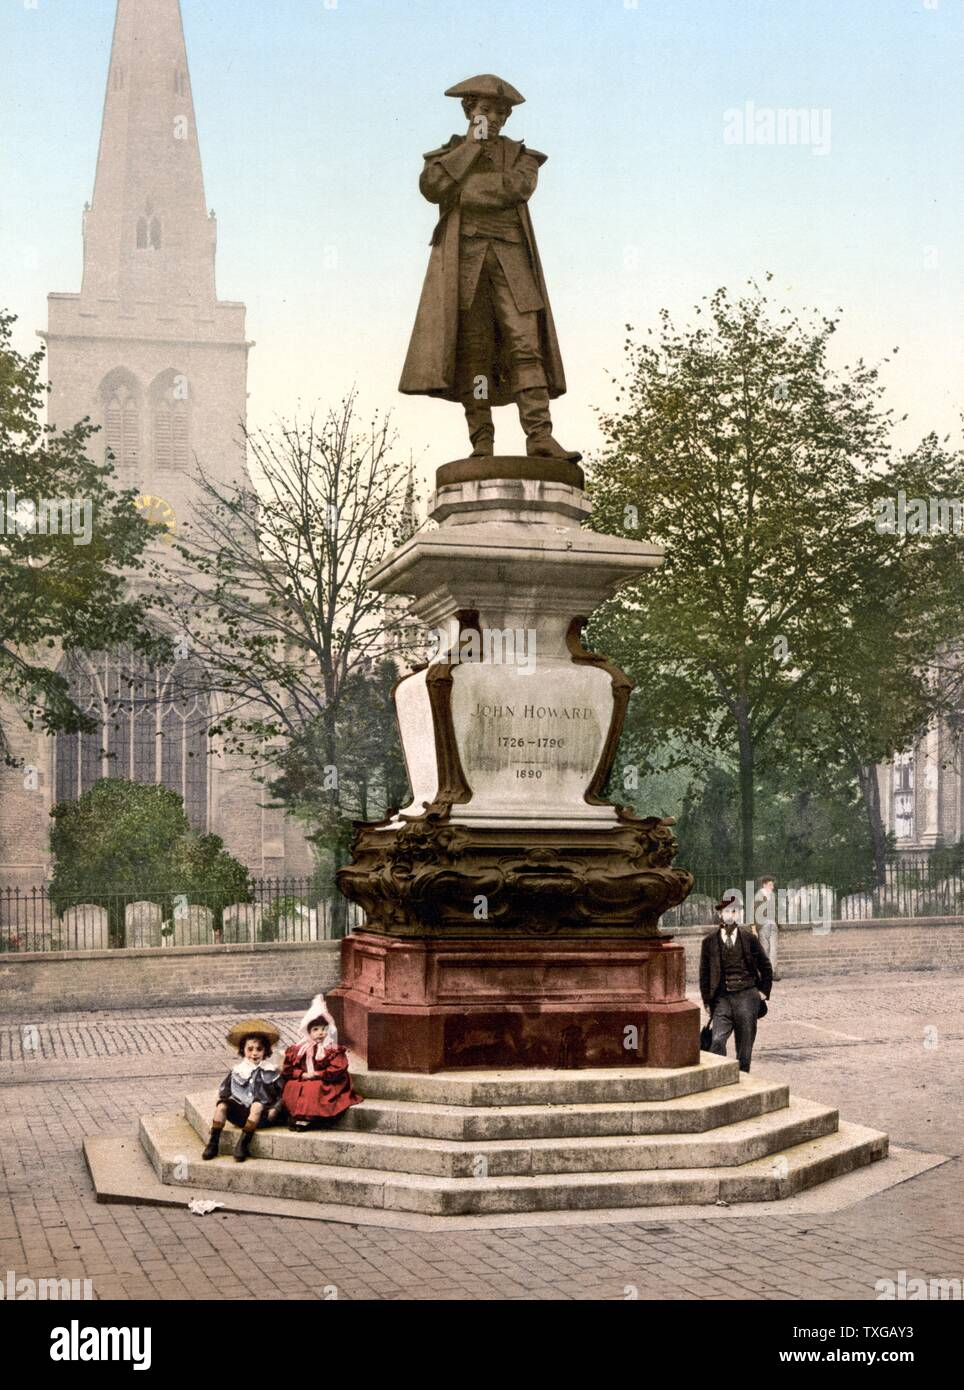 Statue of philanthropist John Howard (1726-1790) who was also a prison reformer. The statue is located in Bedford, England and was made by sculptor Sir Alfred Gilbert (1854-1934). 1890 - Stock Image